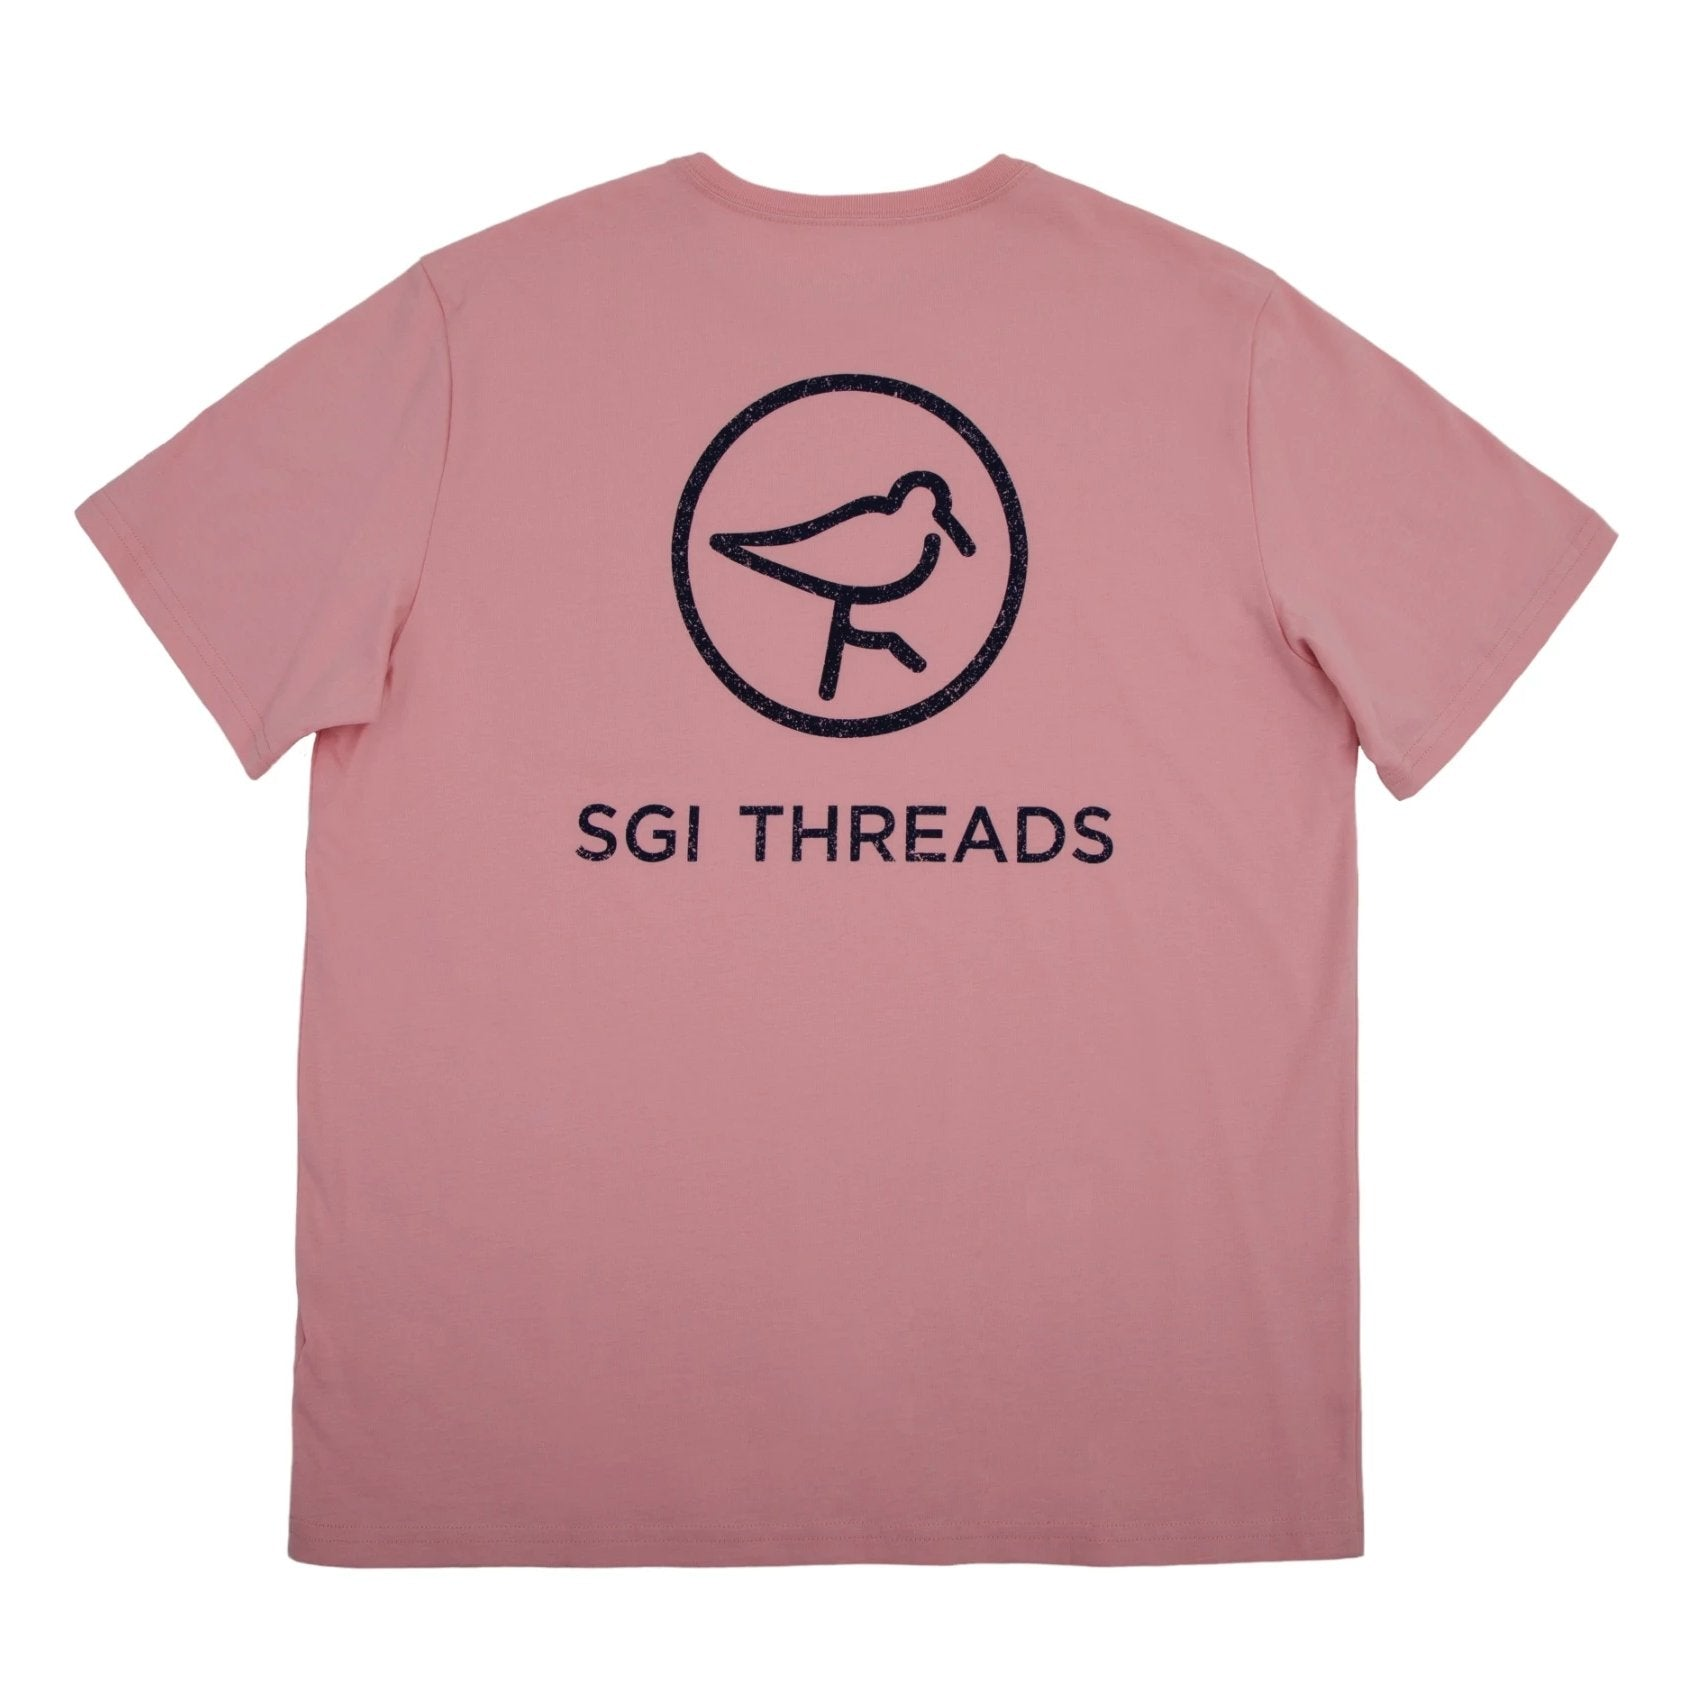 DISTRESSED SGI THREADS SHORT-SLEEVE TEE PINK/NAVY